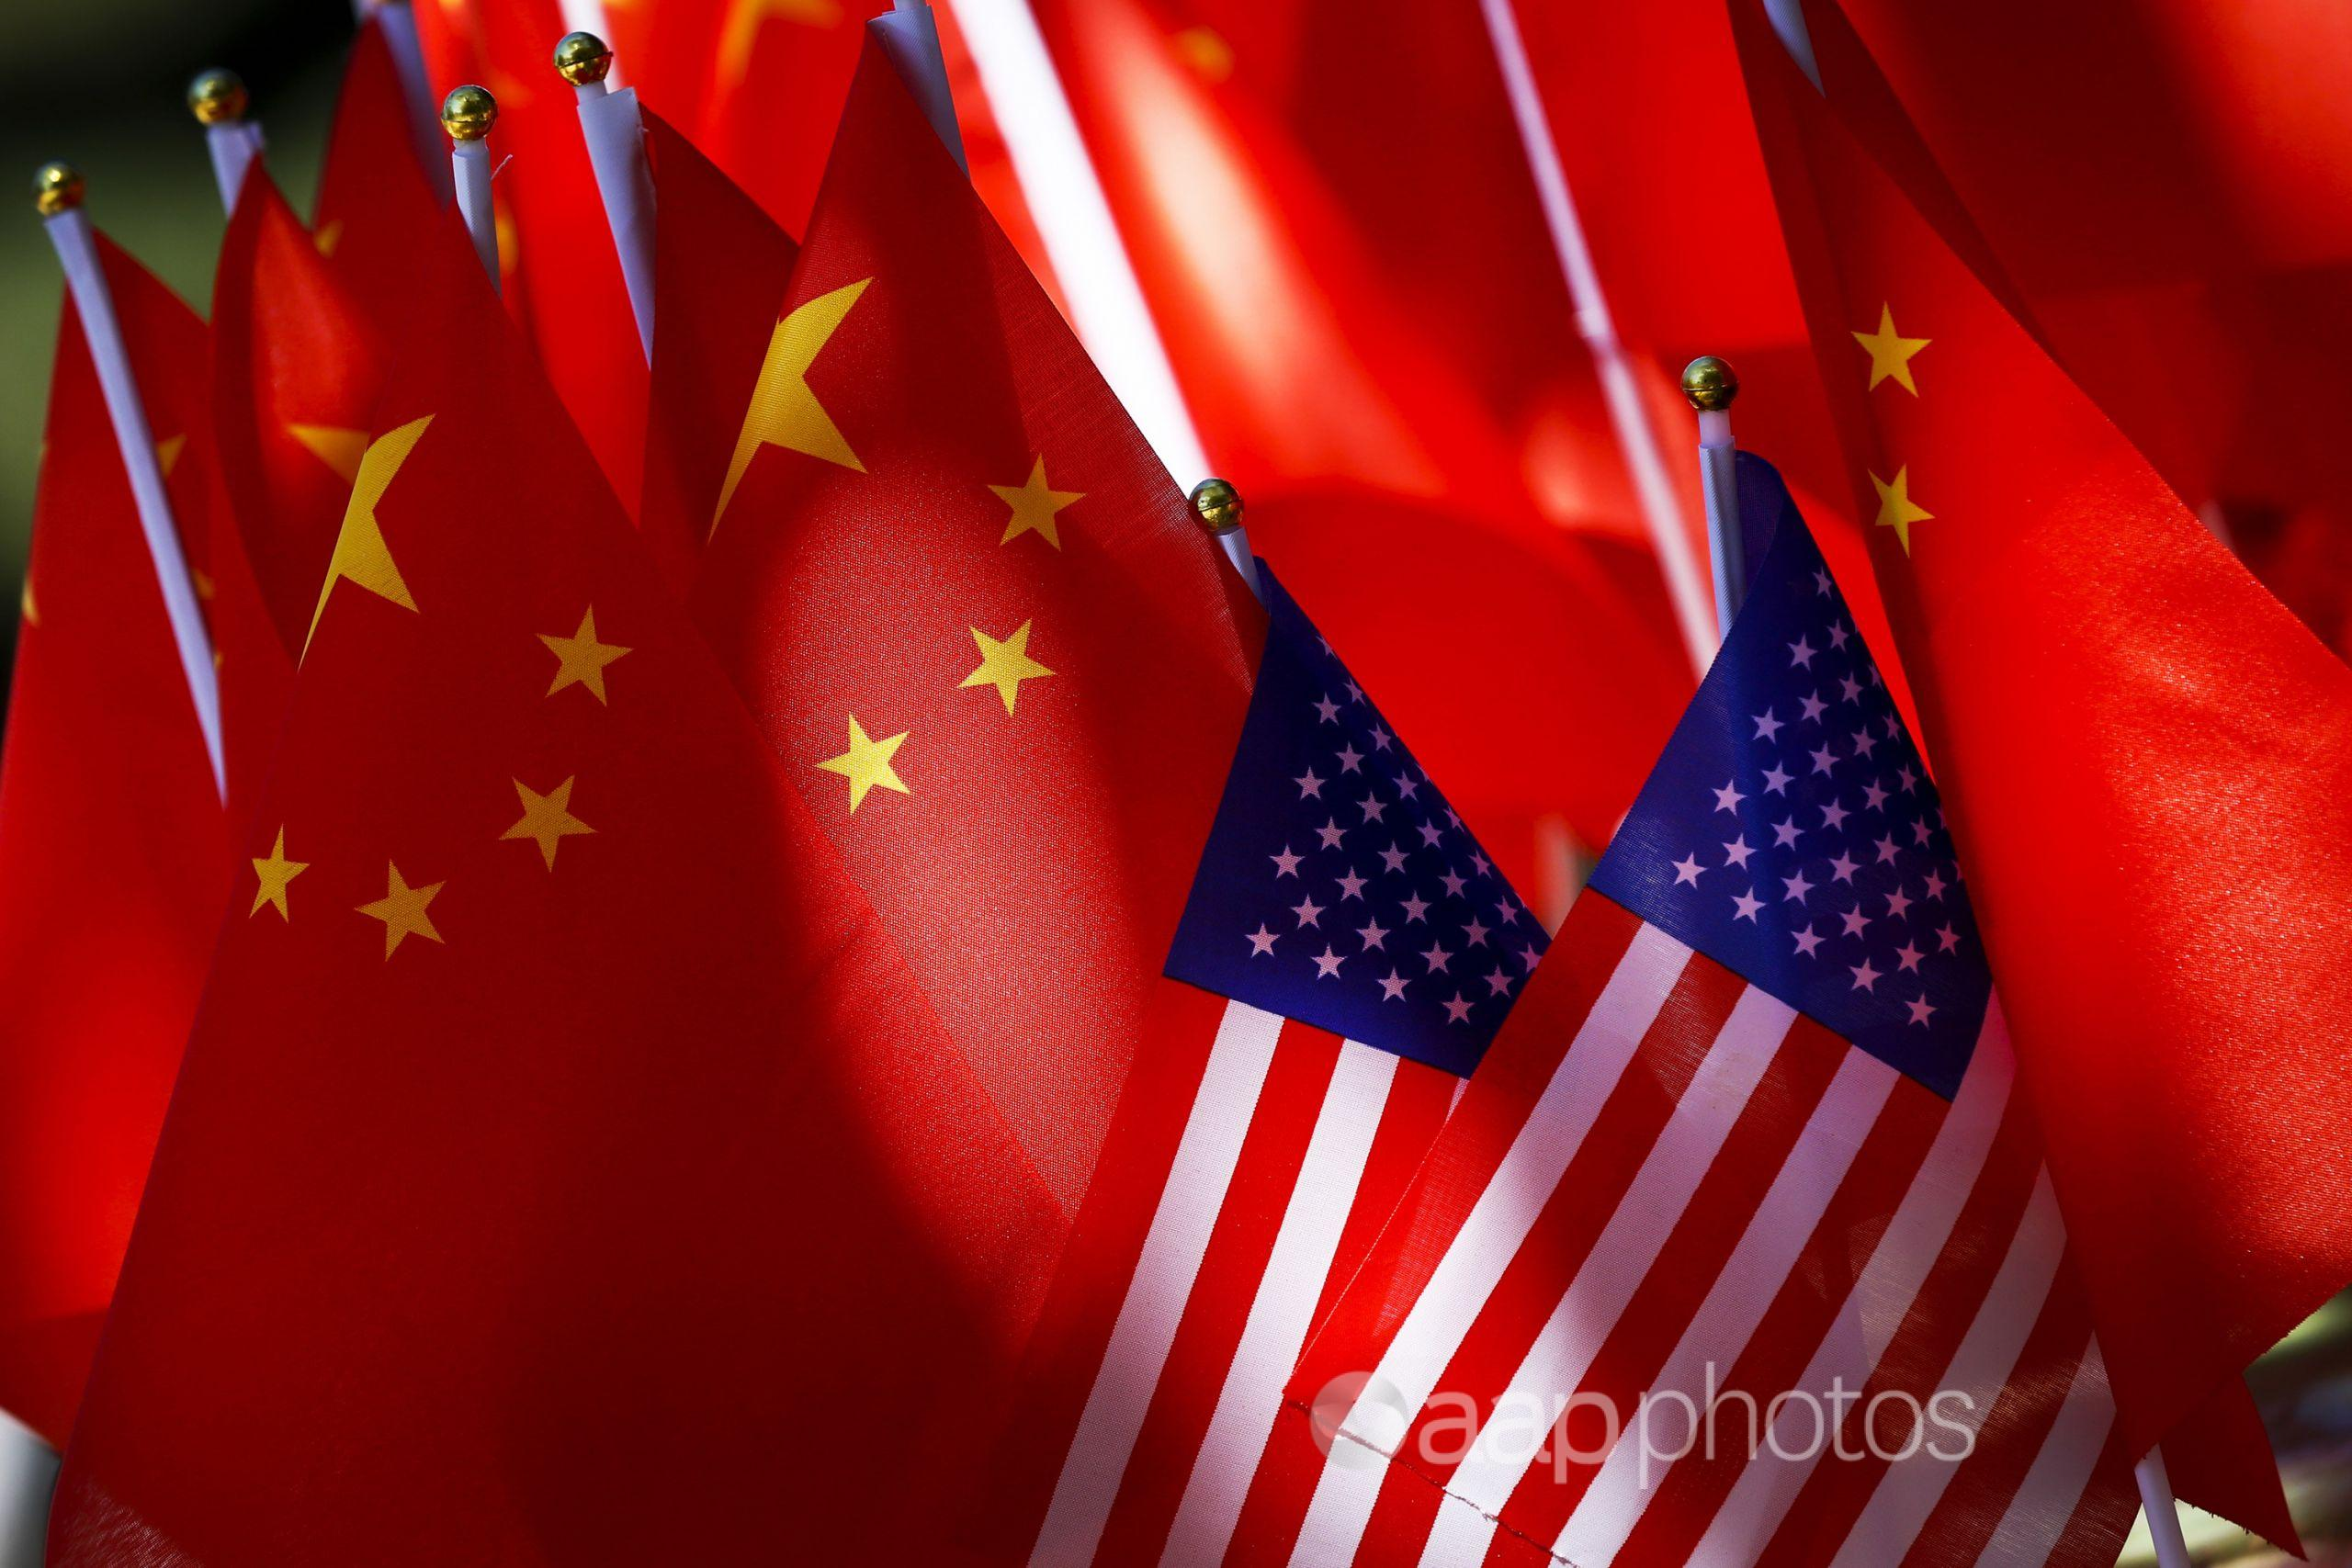 American flags are displayed together with Chinese flags in Beijing